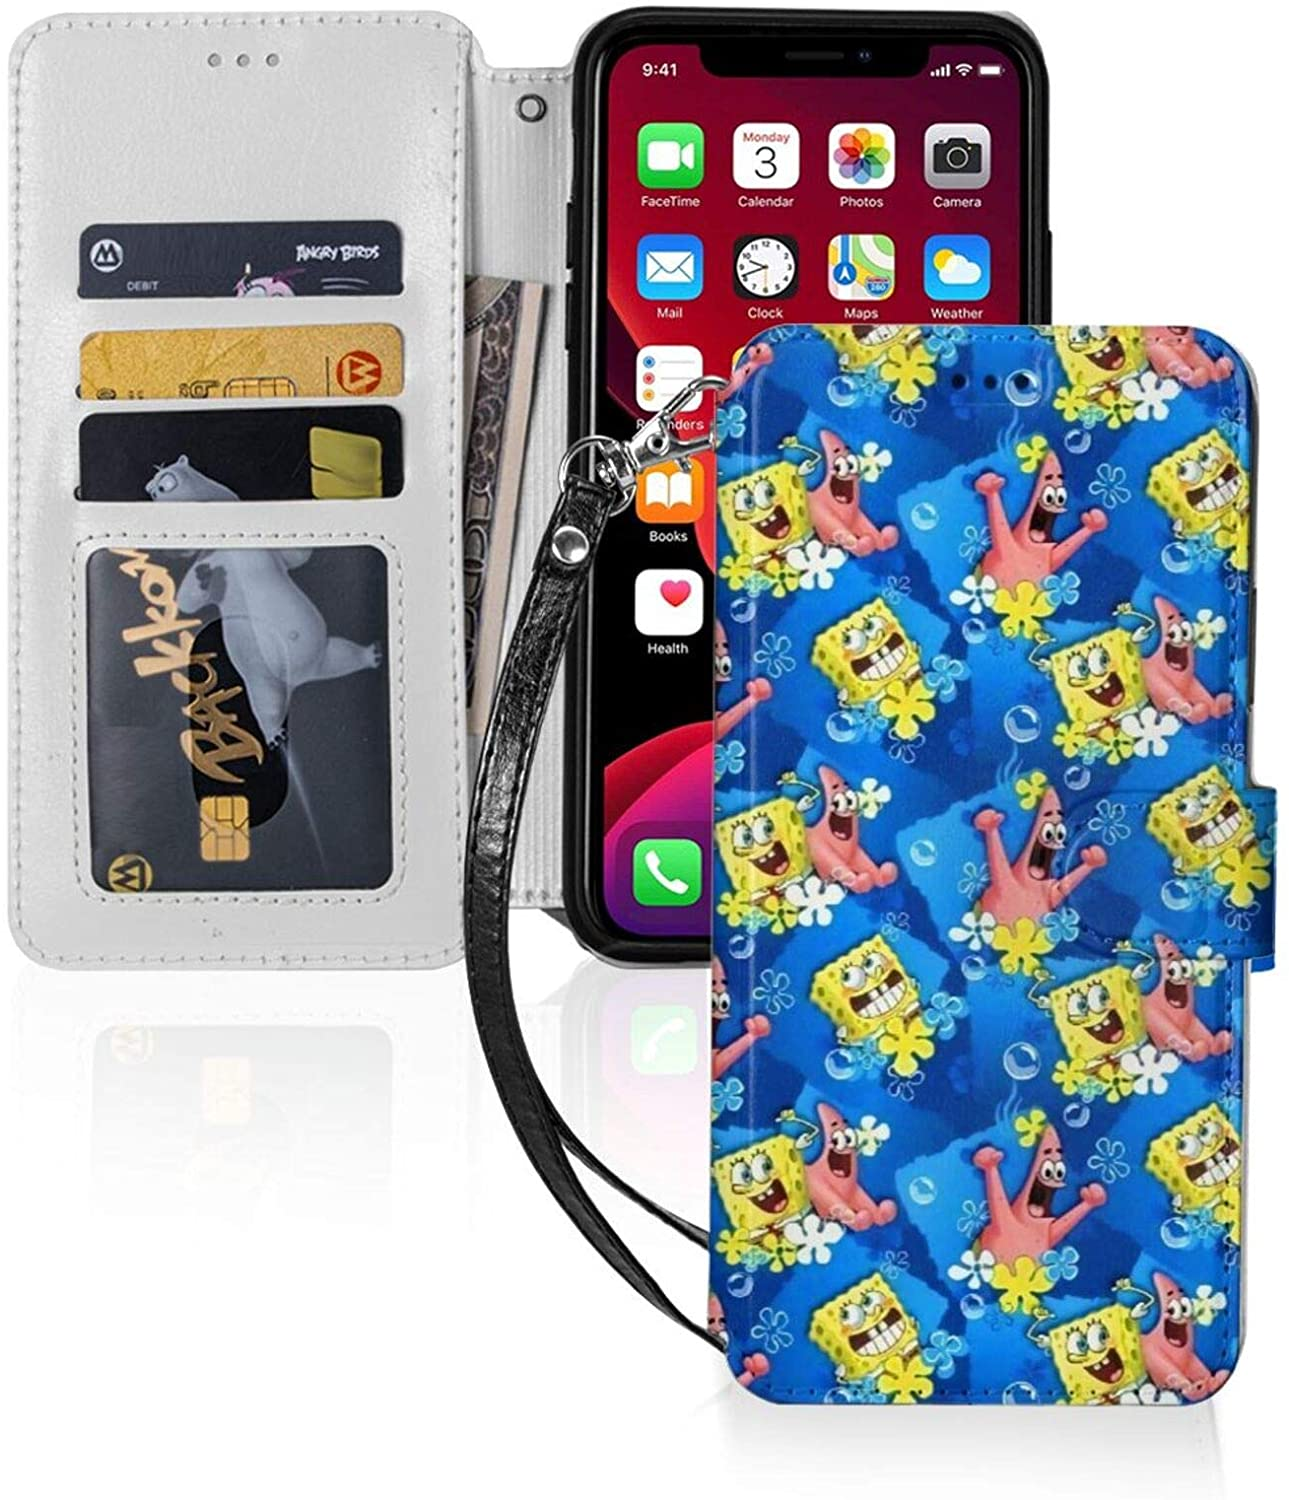 Sponge-Bob Square-Pants Wallet Case Flip Cell Phone Cases for iPhone 11 with Wrist Strap Credit Cash Cover Slots Holder Carrying Pouch TPU+Pu Leather Cover iPhone 11 Pro